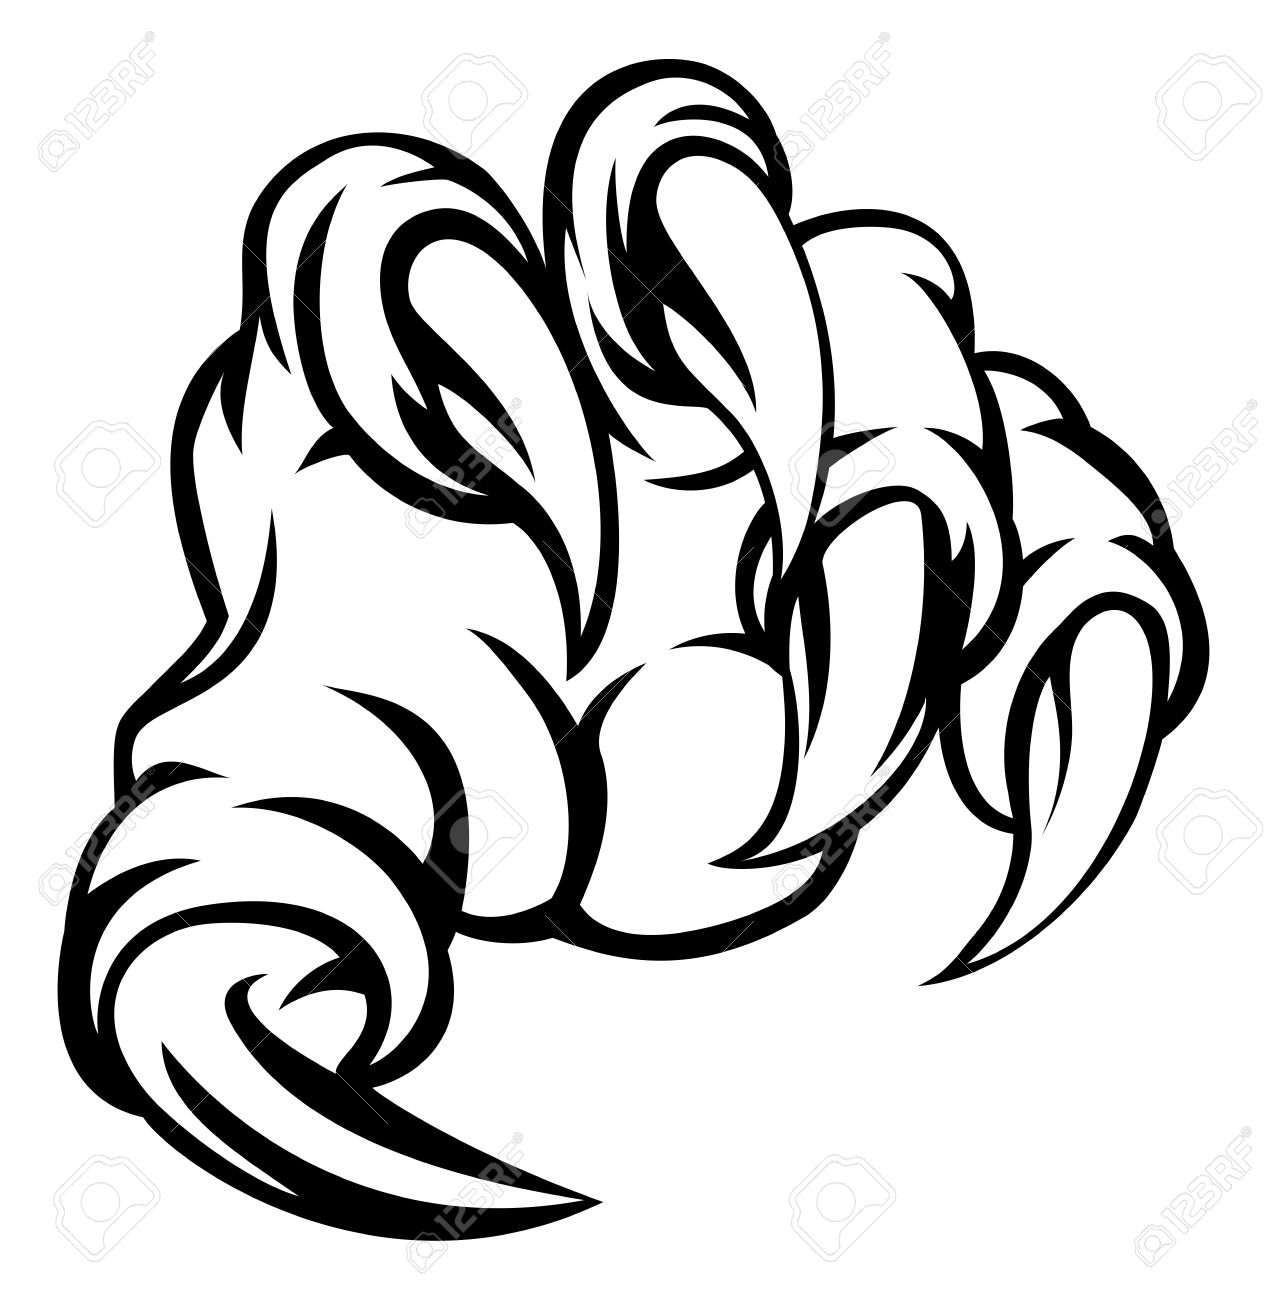 1267x1300 A Monster Claw Hand Illustration Royalty Free Cliparts, Vectors